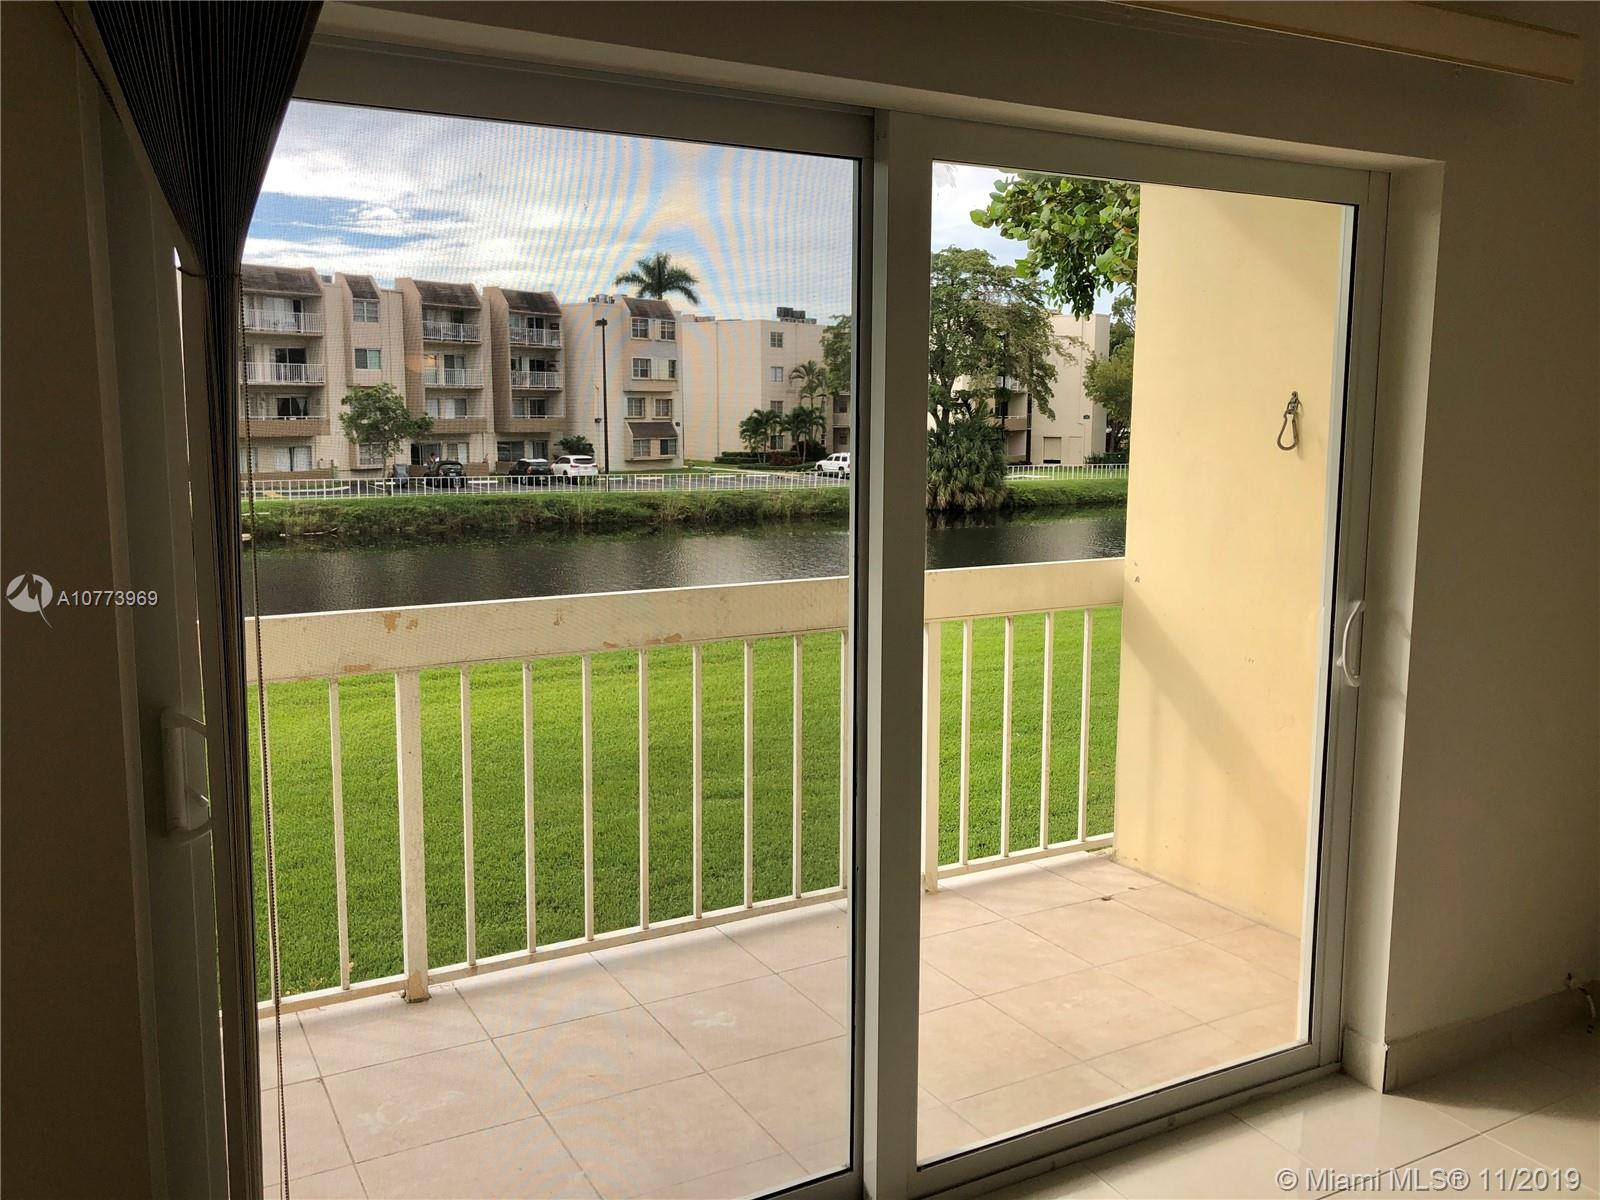 Large one bedroom unit with new tile floors and new AC with a large balcony overlooking the canal. Clean and ready to move in.  Kings Creek is a quiet community really close to Dadeland Mall and many highways, 826, 874 and US1, very central.